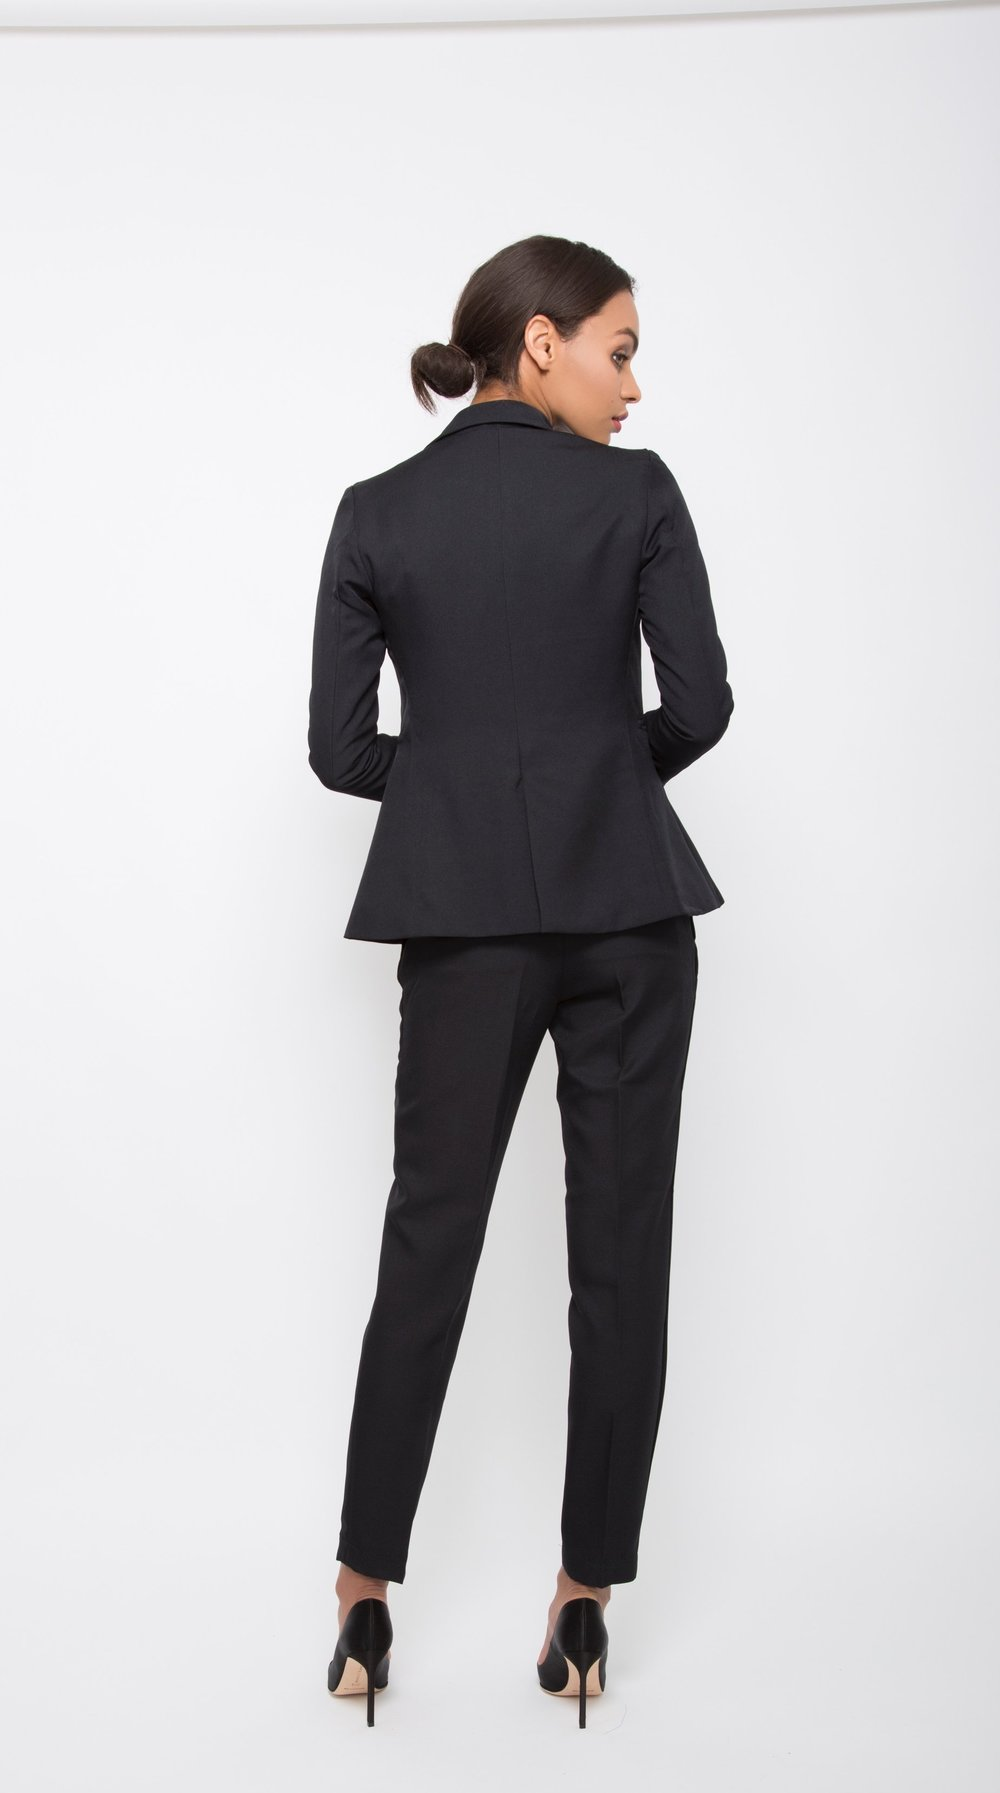 Flatterig Black Pant Suit